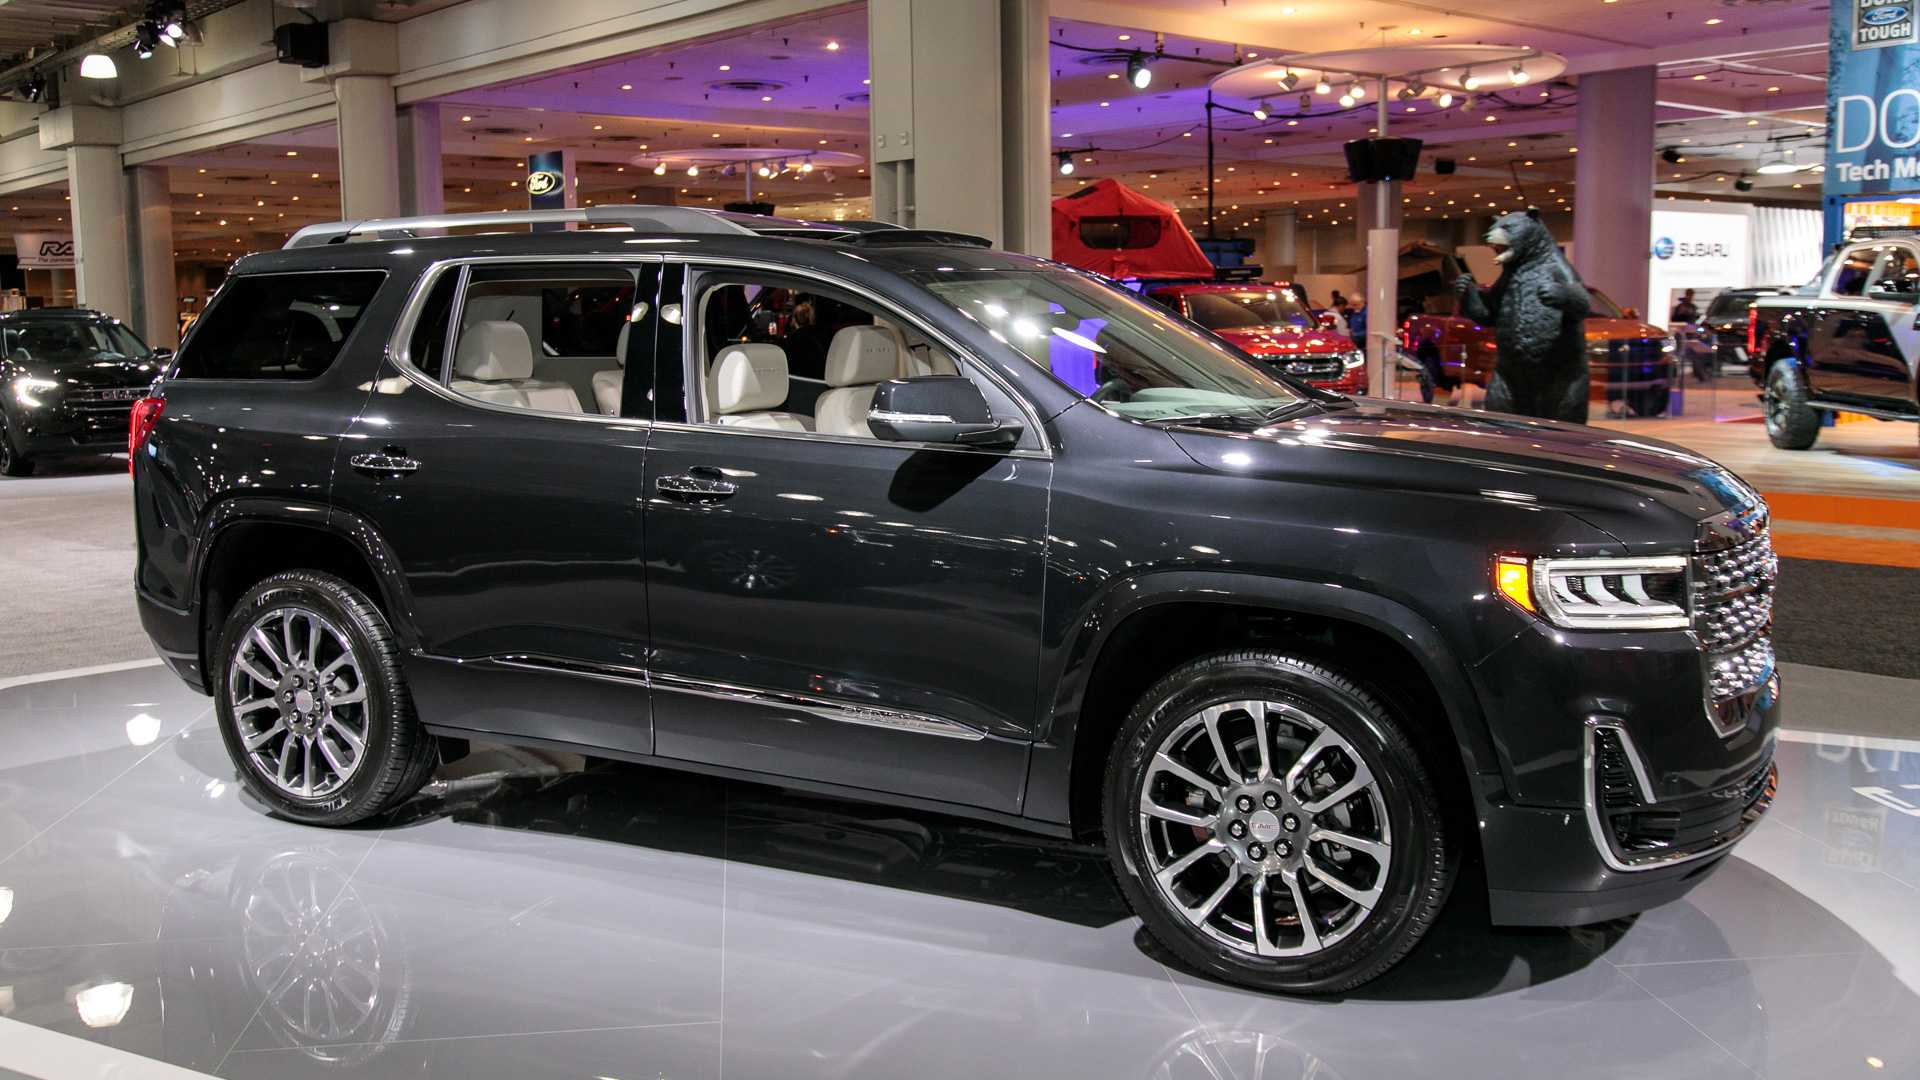 44 The Best 2020 Gmc Acadia Denali Research New